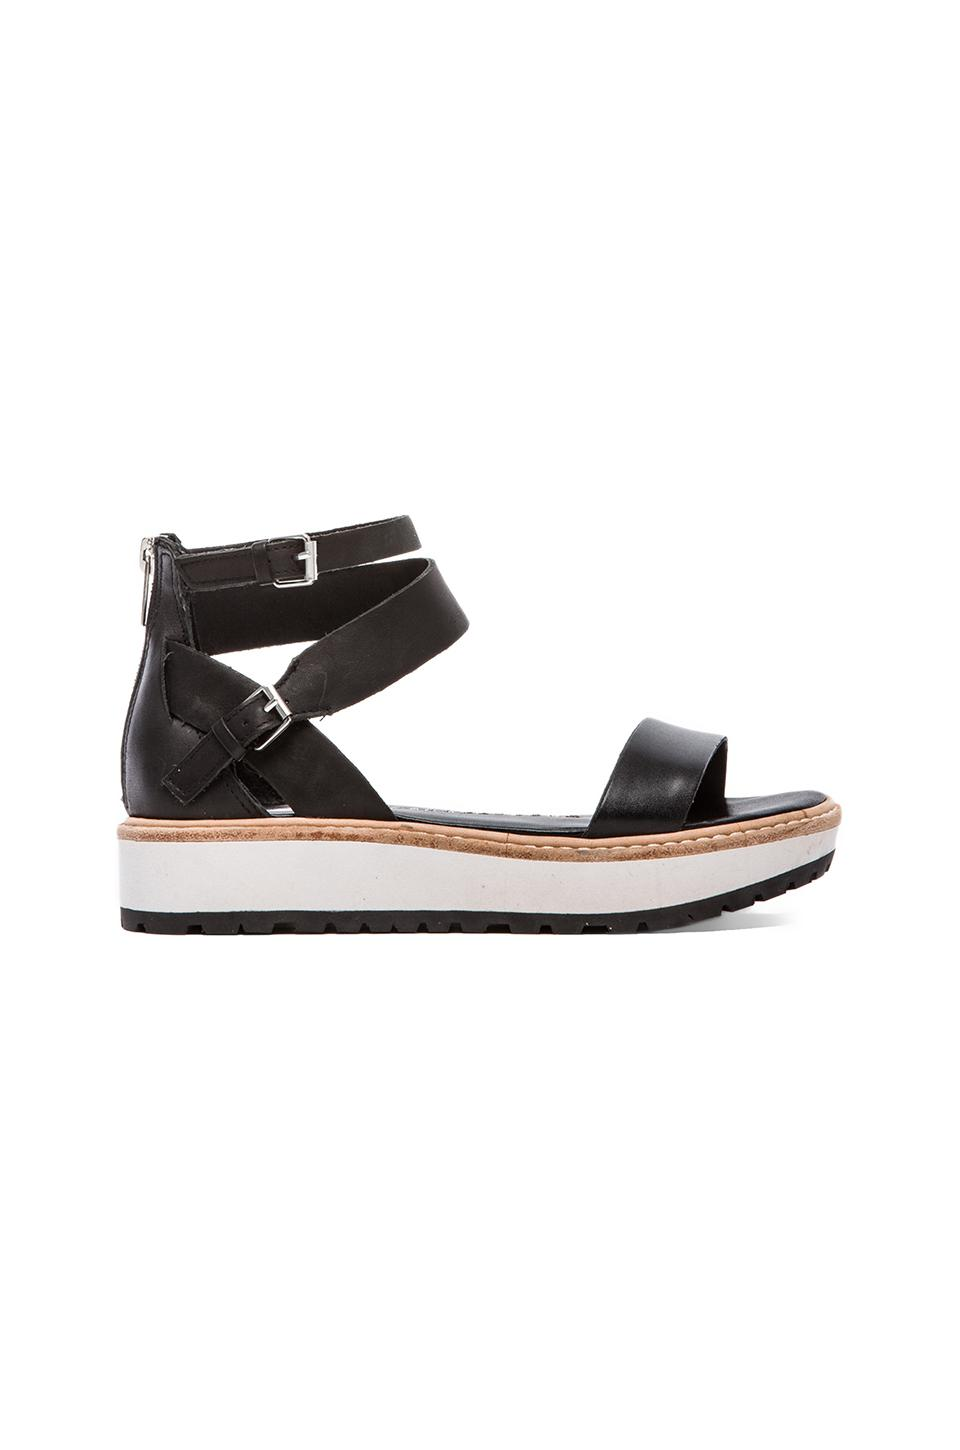 DV by Dolce Vita Zenith Sandal in Black & White